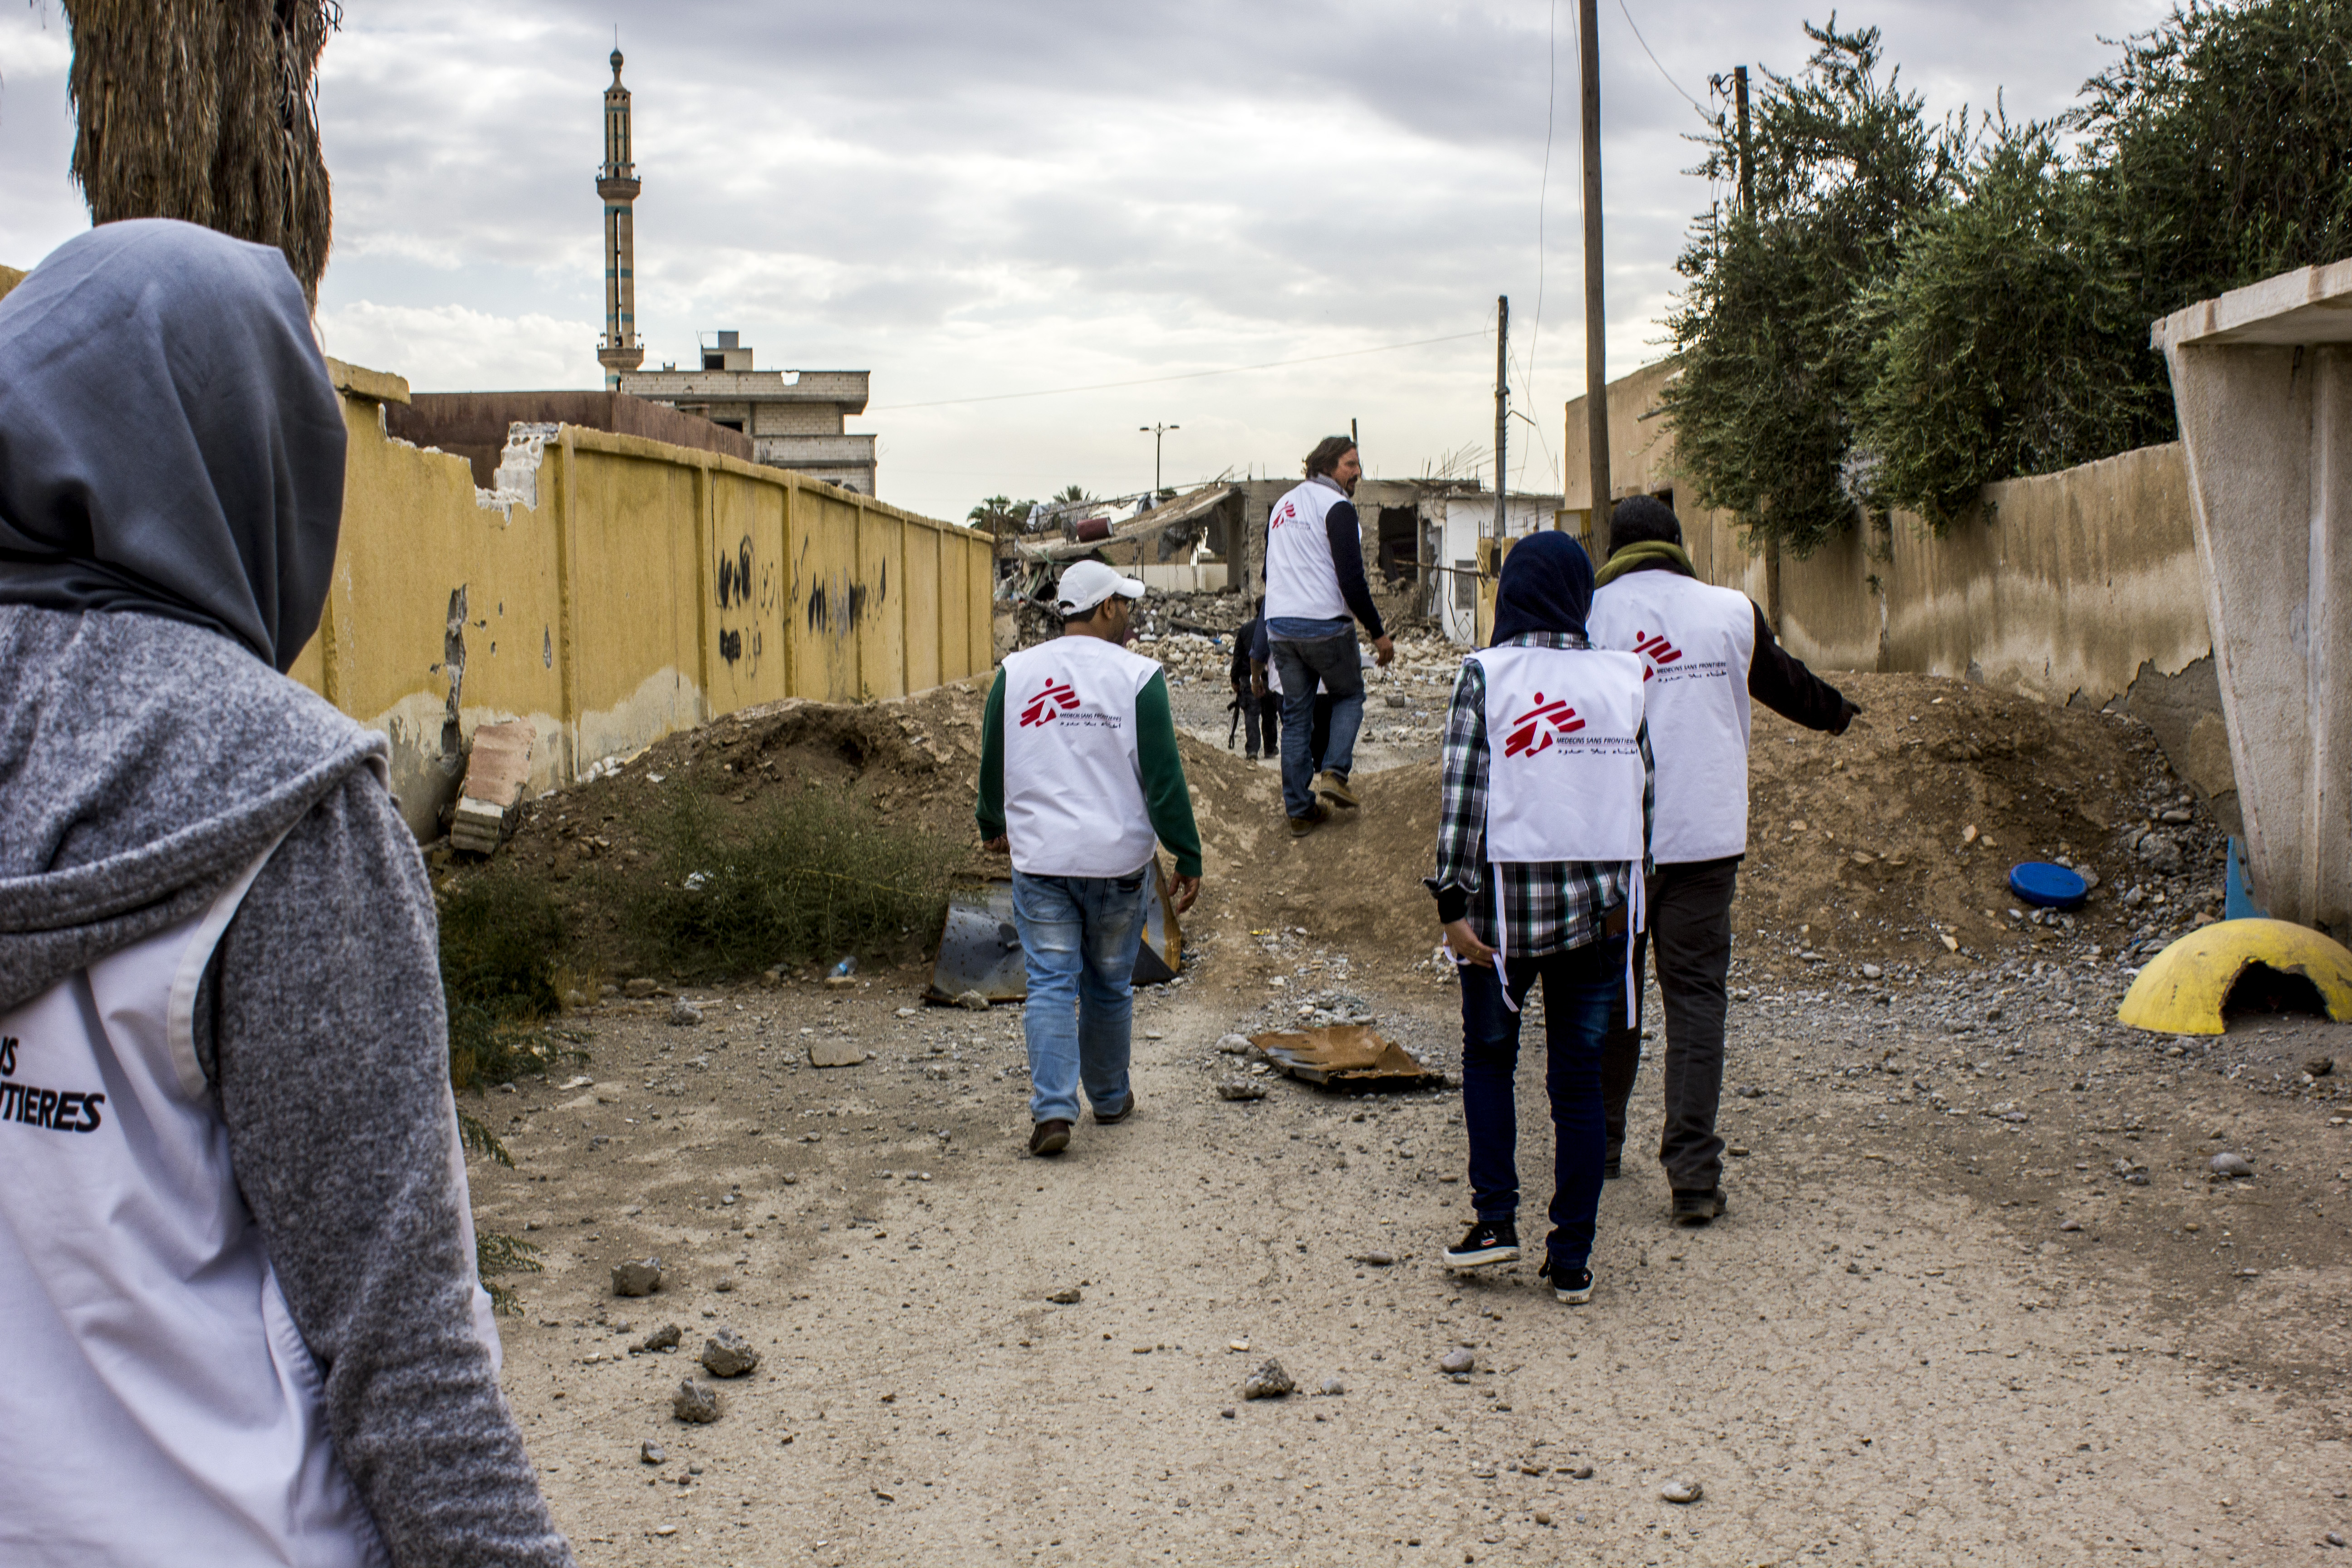 "MSF teams assessing the medical and humanitarian needs in Al Mishlab. east of Raqqa. 2 November. ""When we first visited Mishlab, east of Raqqa, it was a ghost town, but on our latest visit, some people had returned to check on their houses, Some found their homes in ruins; others found dead bodies and explosive devices in their houses, gardens and in the streets."" says Craig Kenzie, leader of MSF's Raqqa response team"